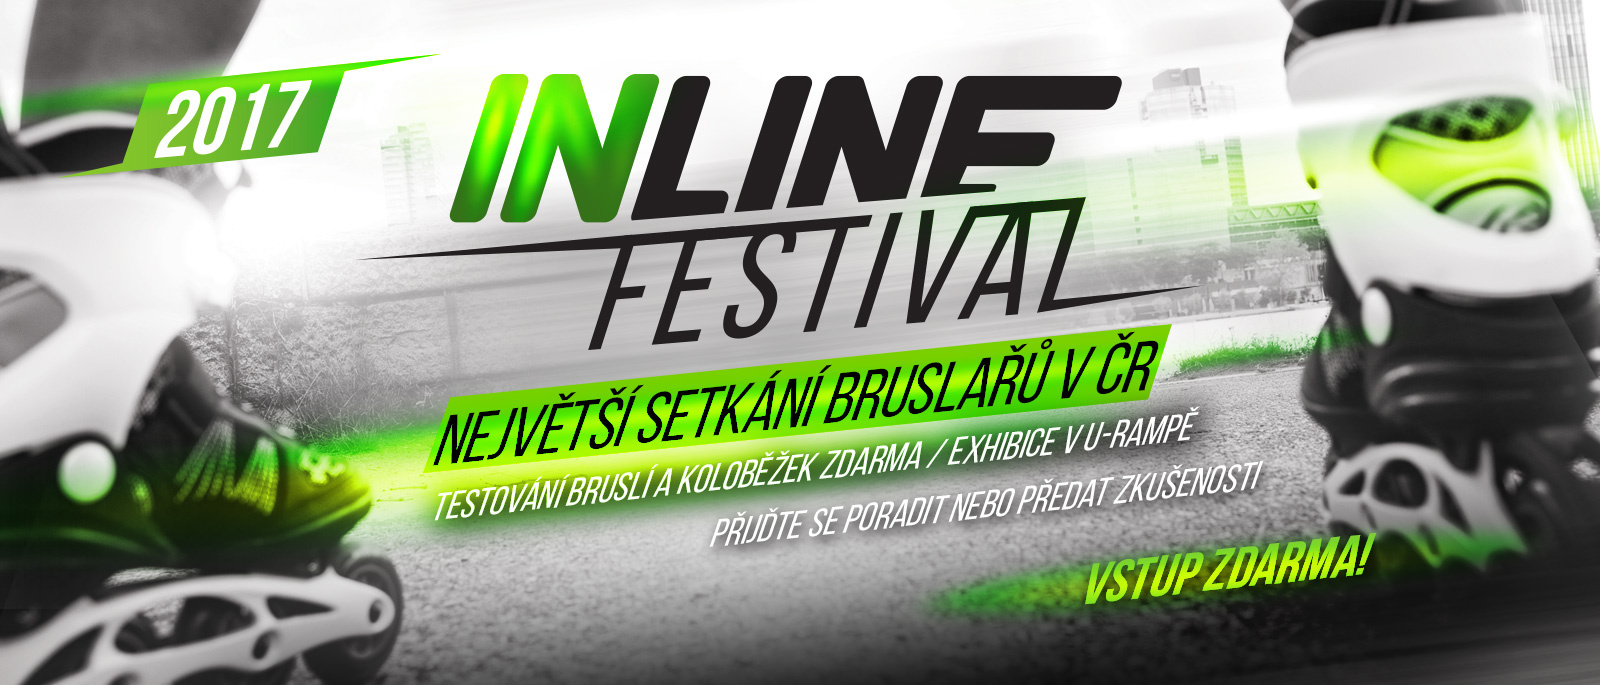 Inline Festival 2017 - free testing of skates for public